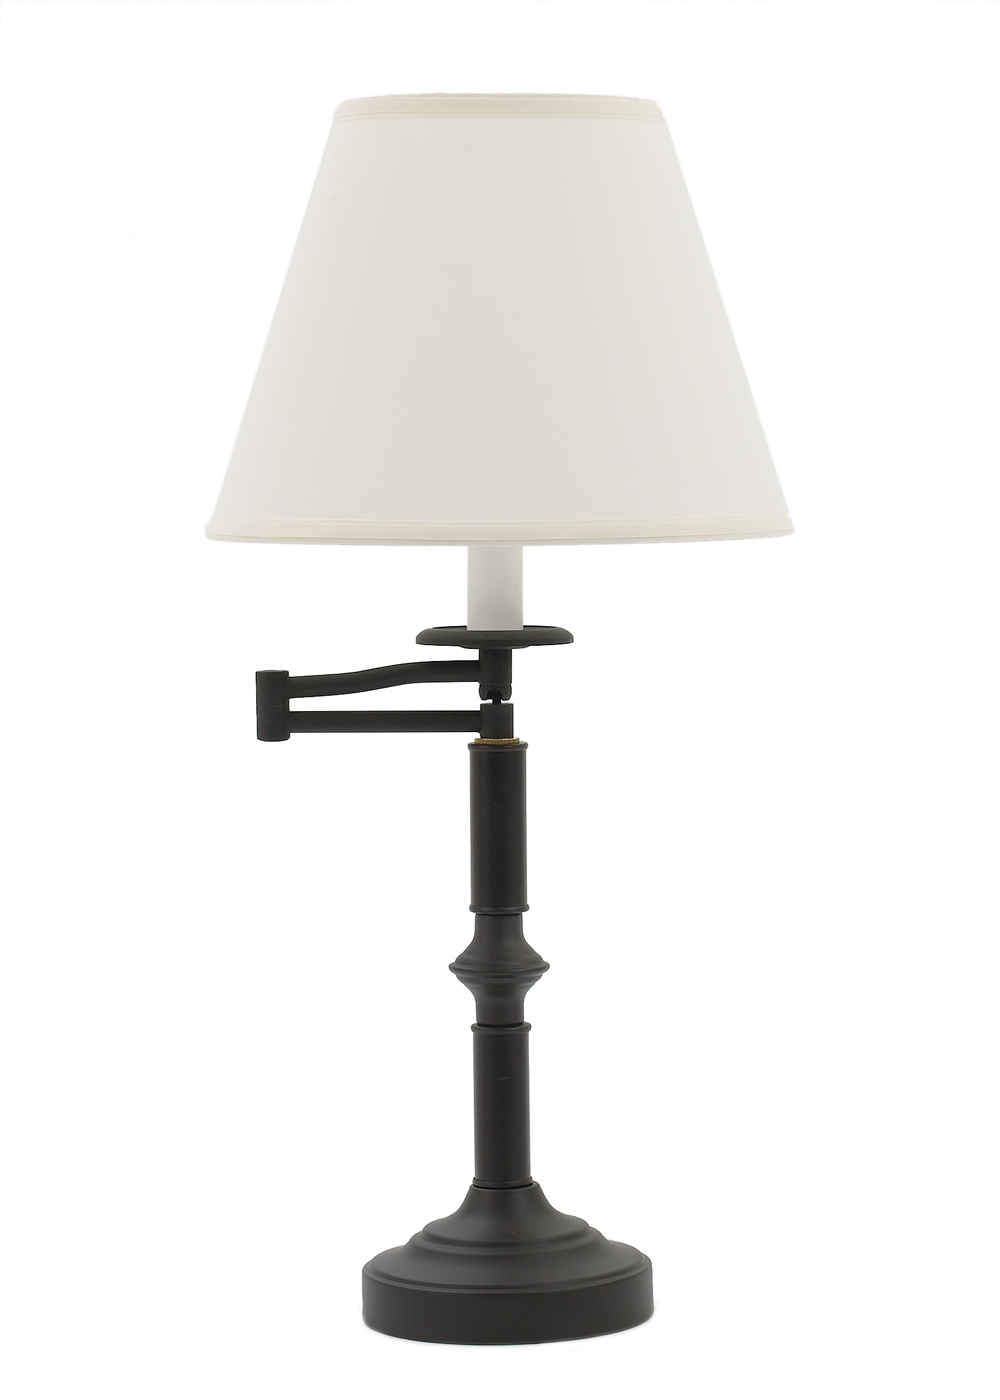 (1005) Black Swing Arm Iron Table Lamp